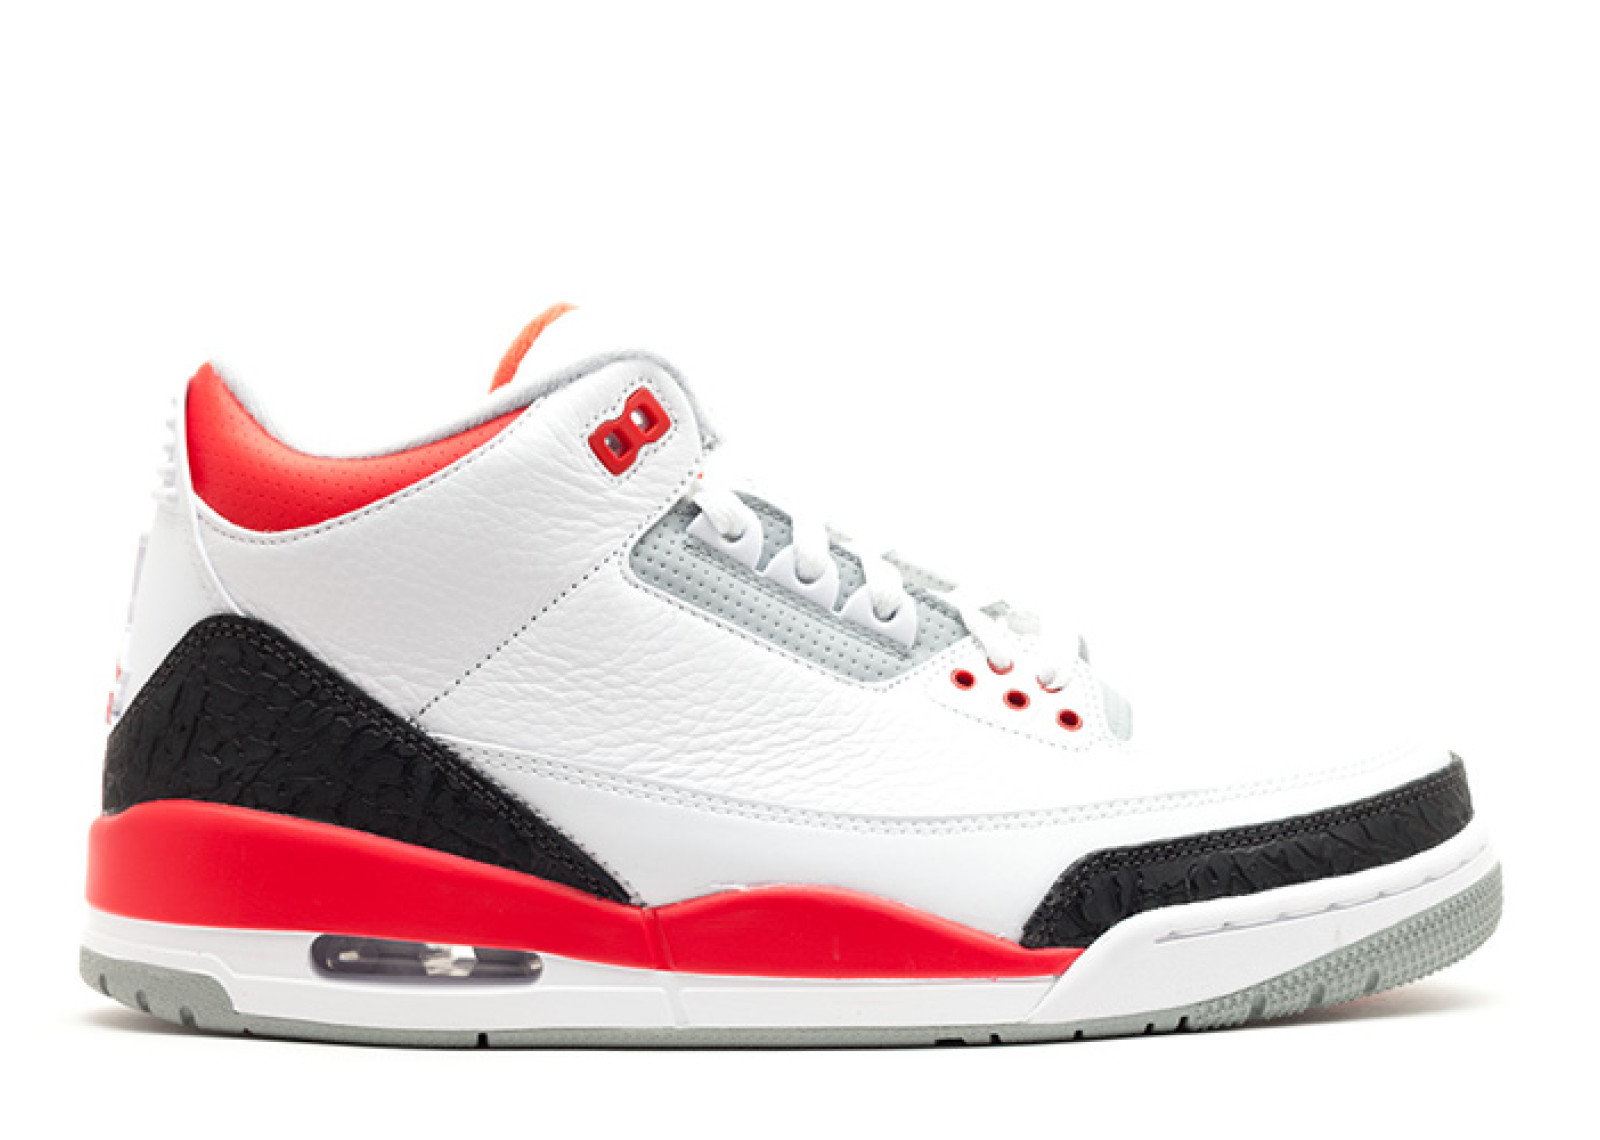 Air Jordan 3 Retro Fire Red 2013 Release